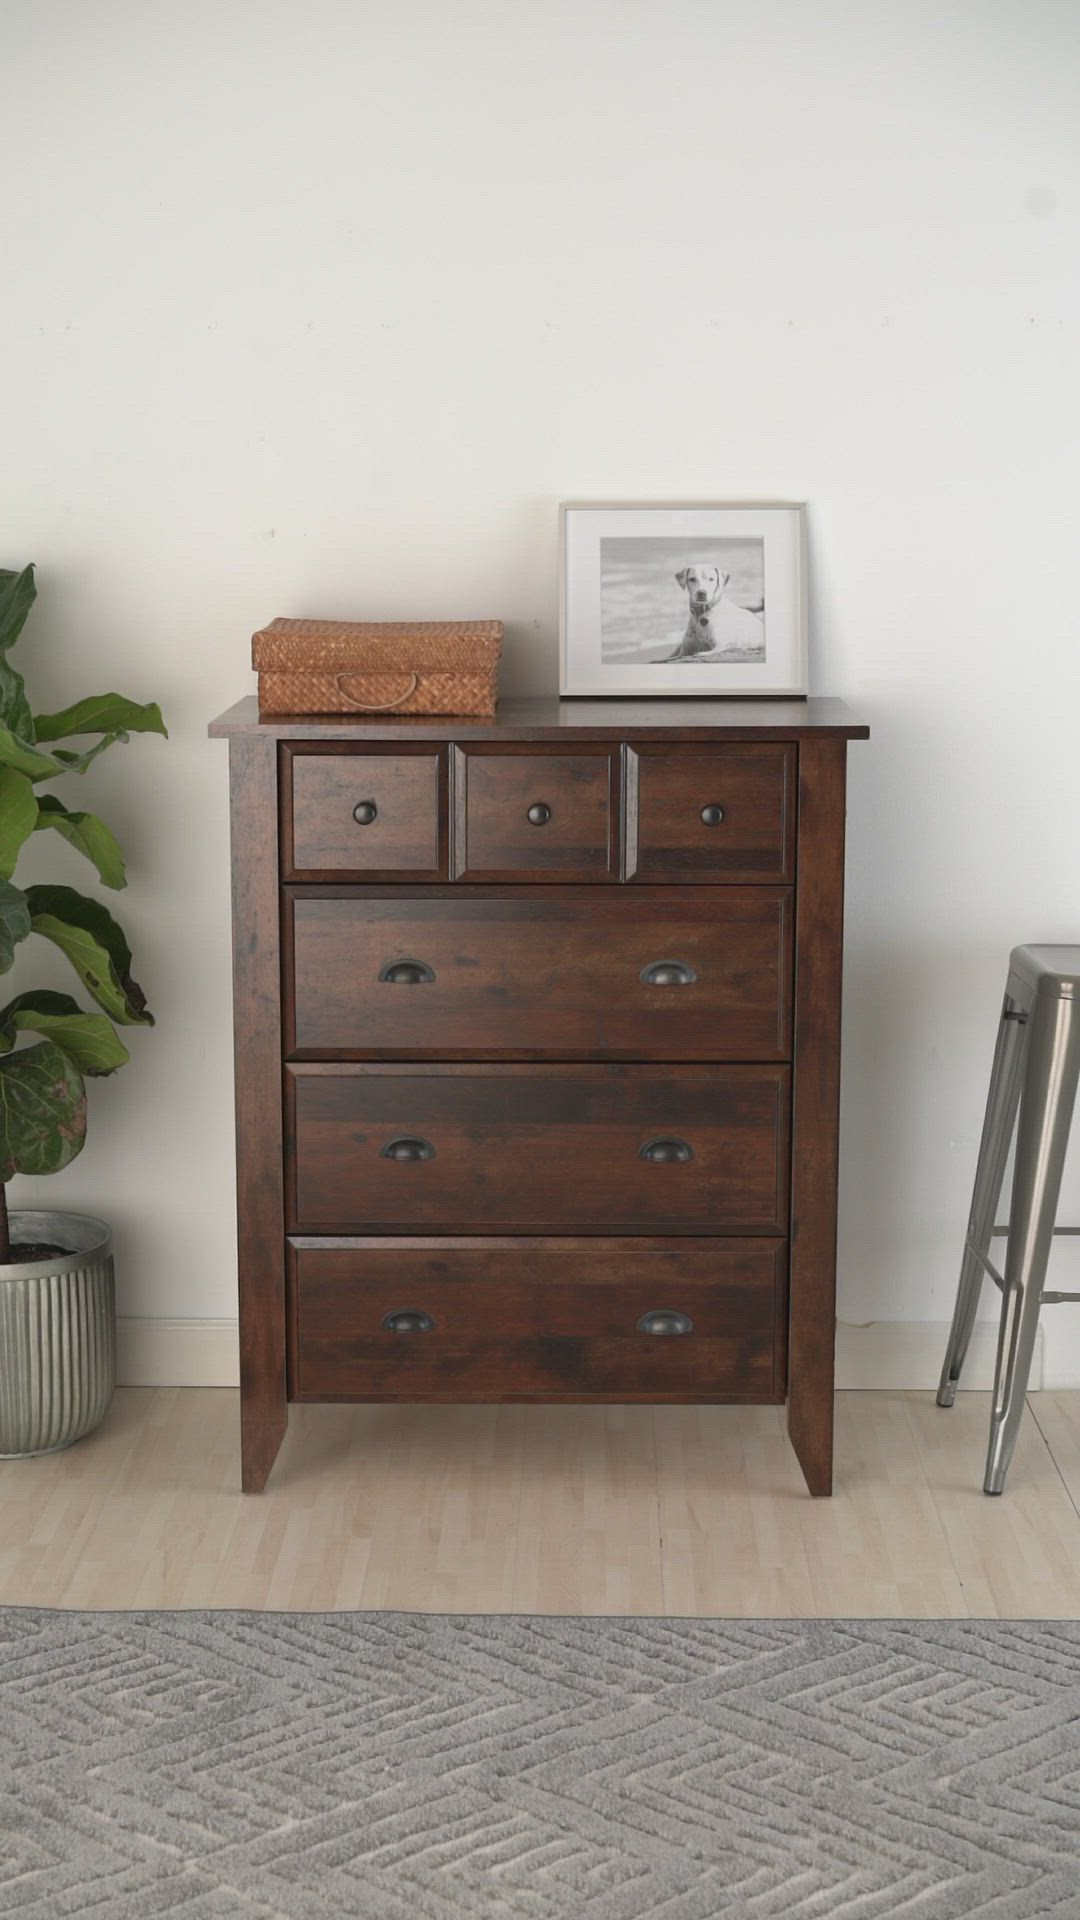 c354bfa3a0278d8598bc597aa816bca9.0000001 - Better Homes & Gardens Leighton Night Stand Rustic Cherry Finish